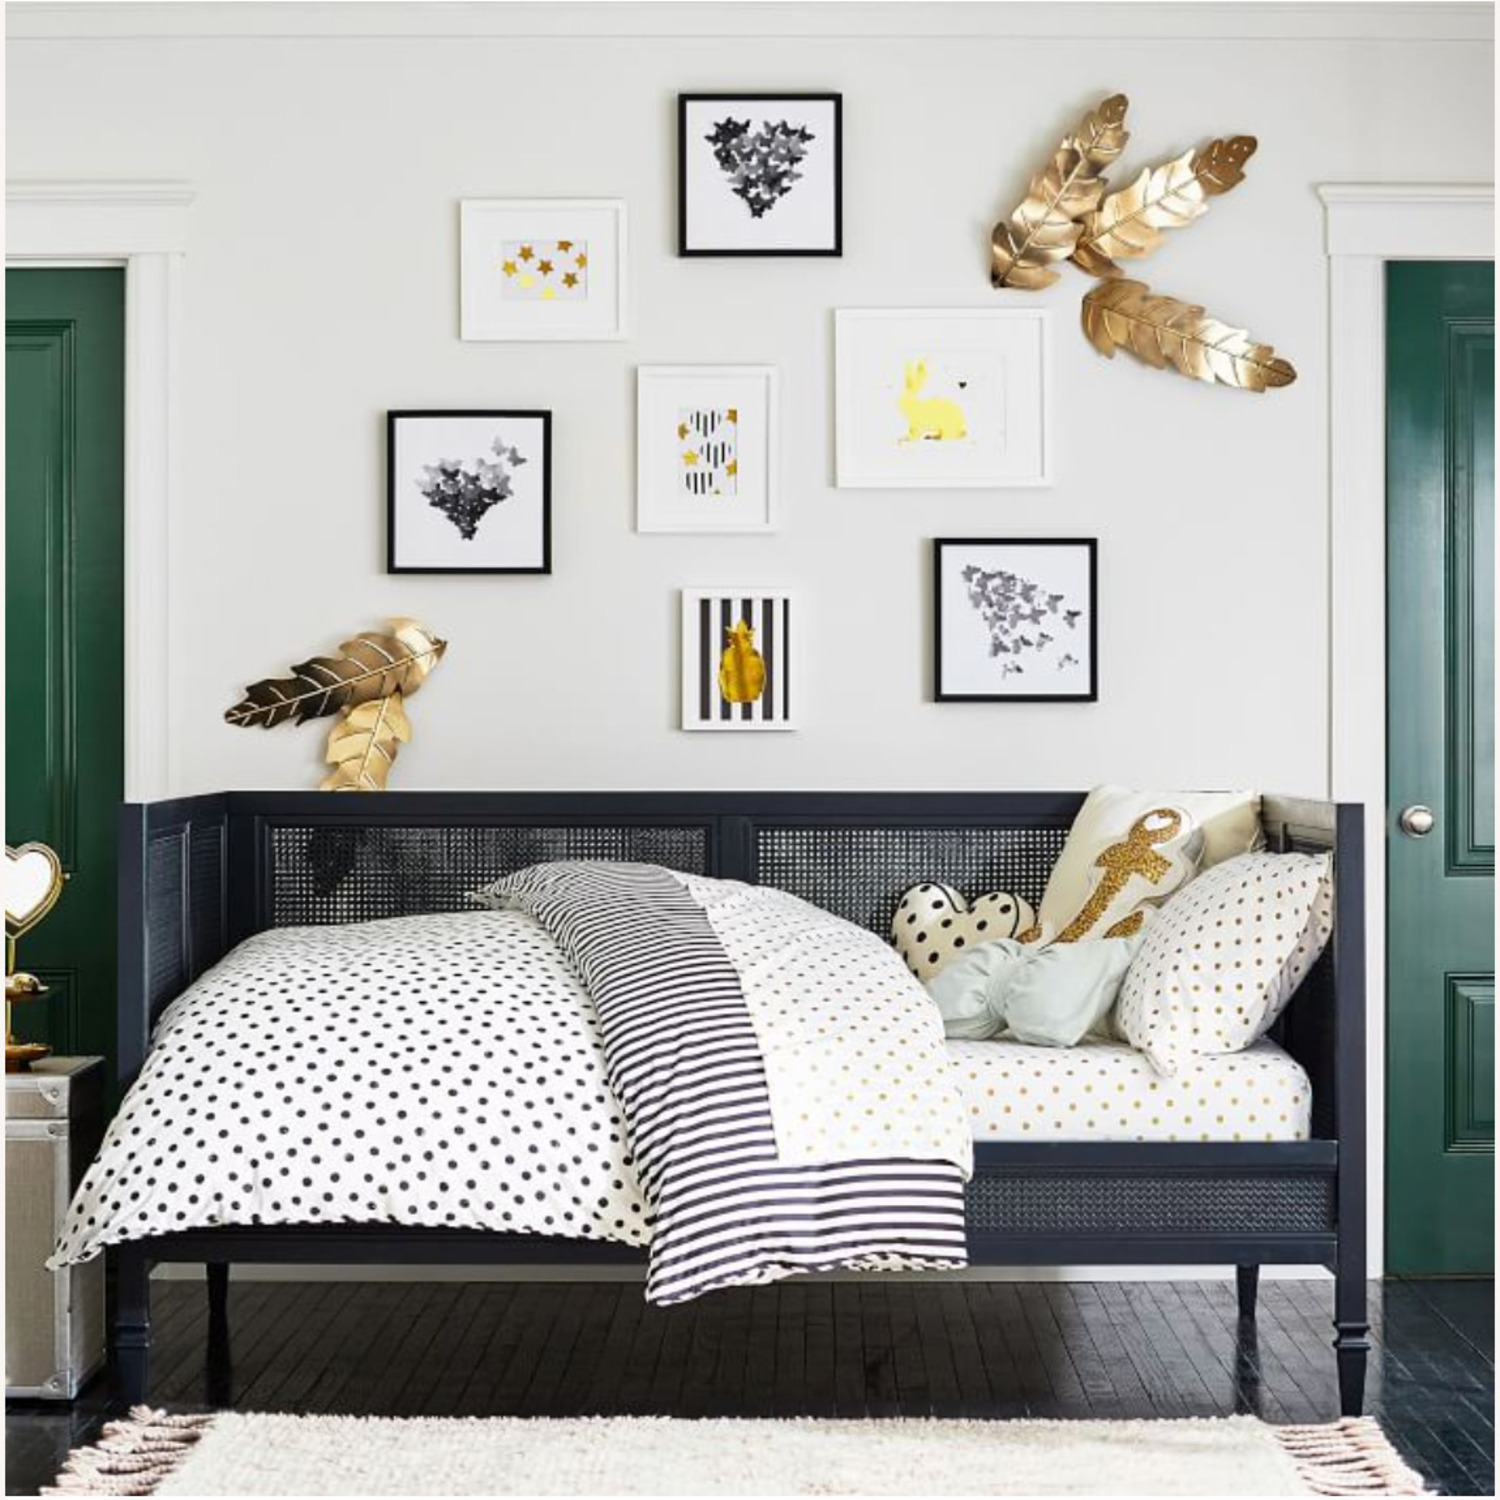 Pottery Barn Full Size Bed/Day Bed - image-2